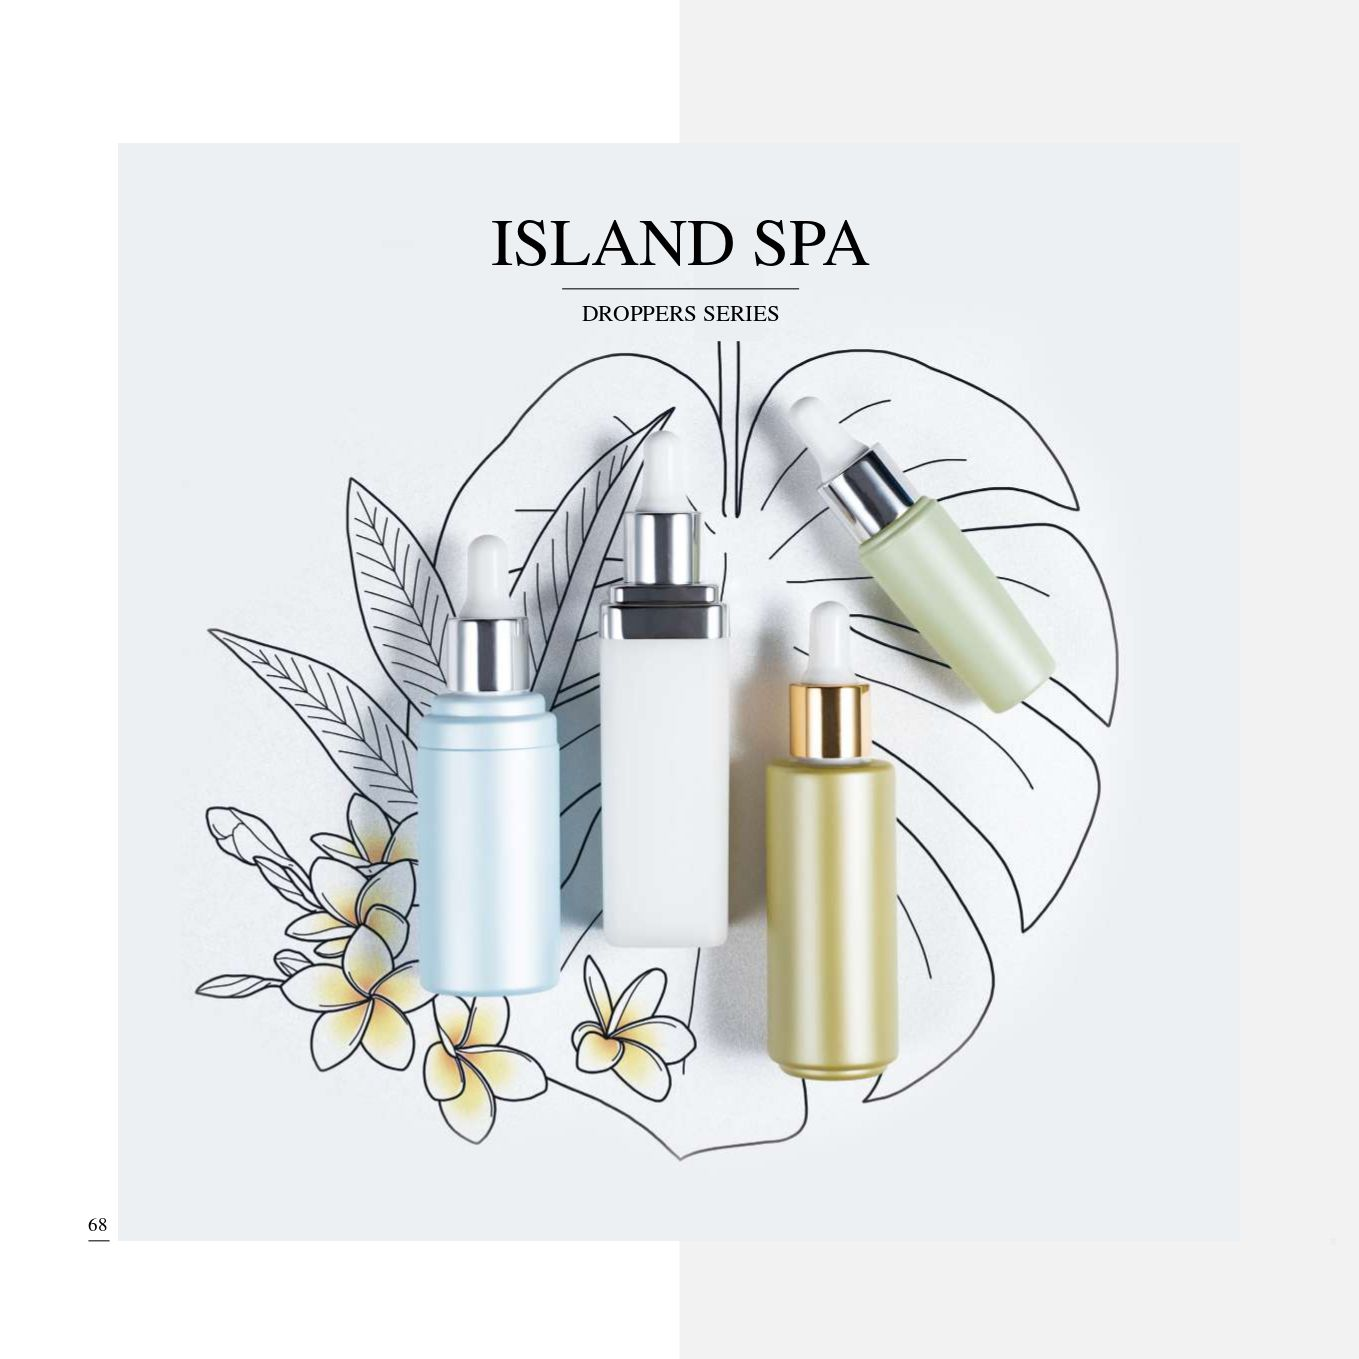 ECO PP & PET Droppers Cosmetic & Skincare packaging - Island SPA serie - Ecofriednly PP/PET Cosmetic Packaging Collection - Island Spa series